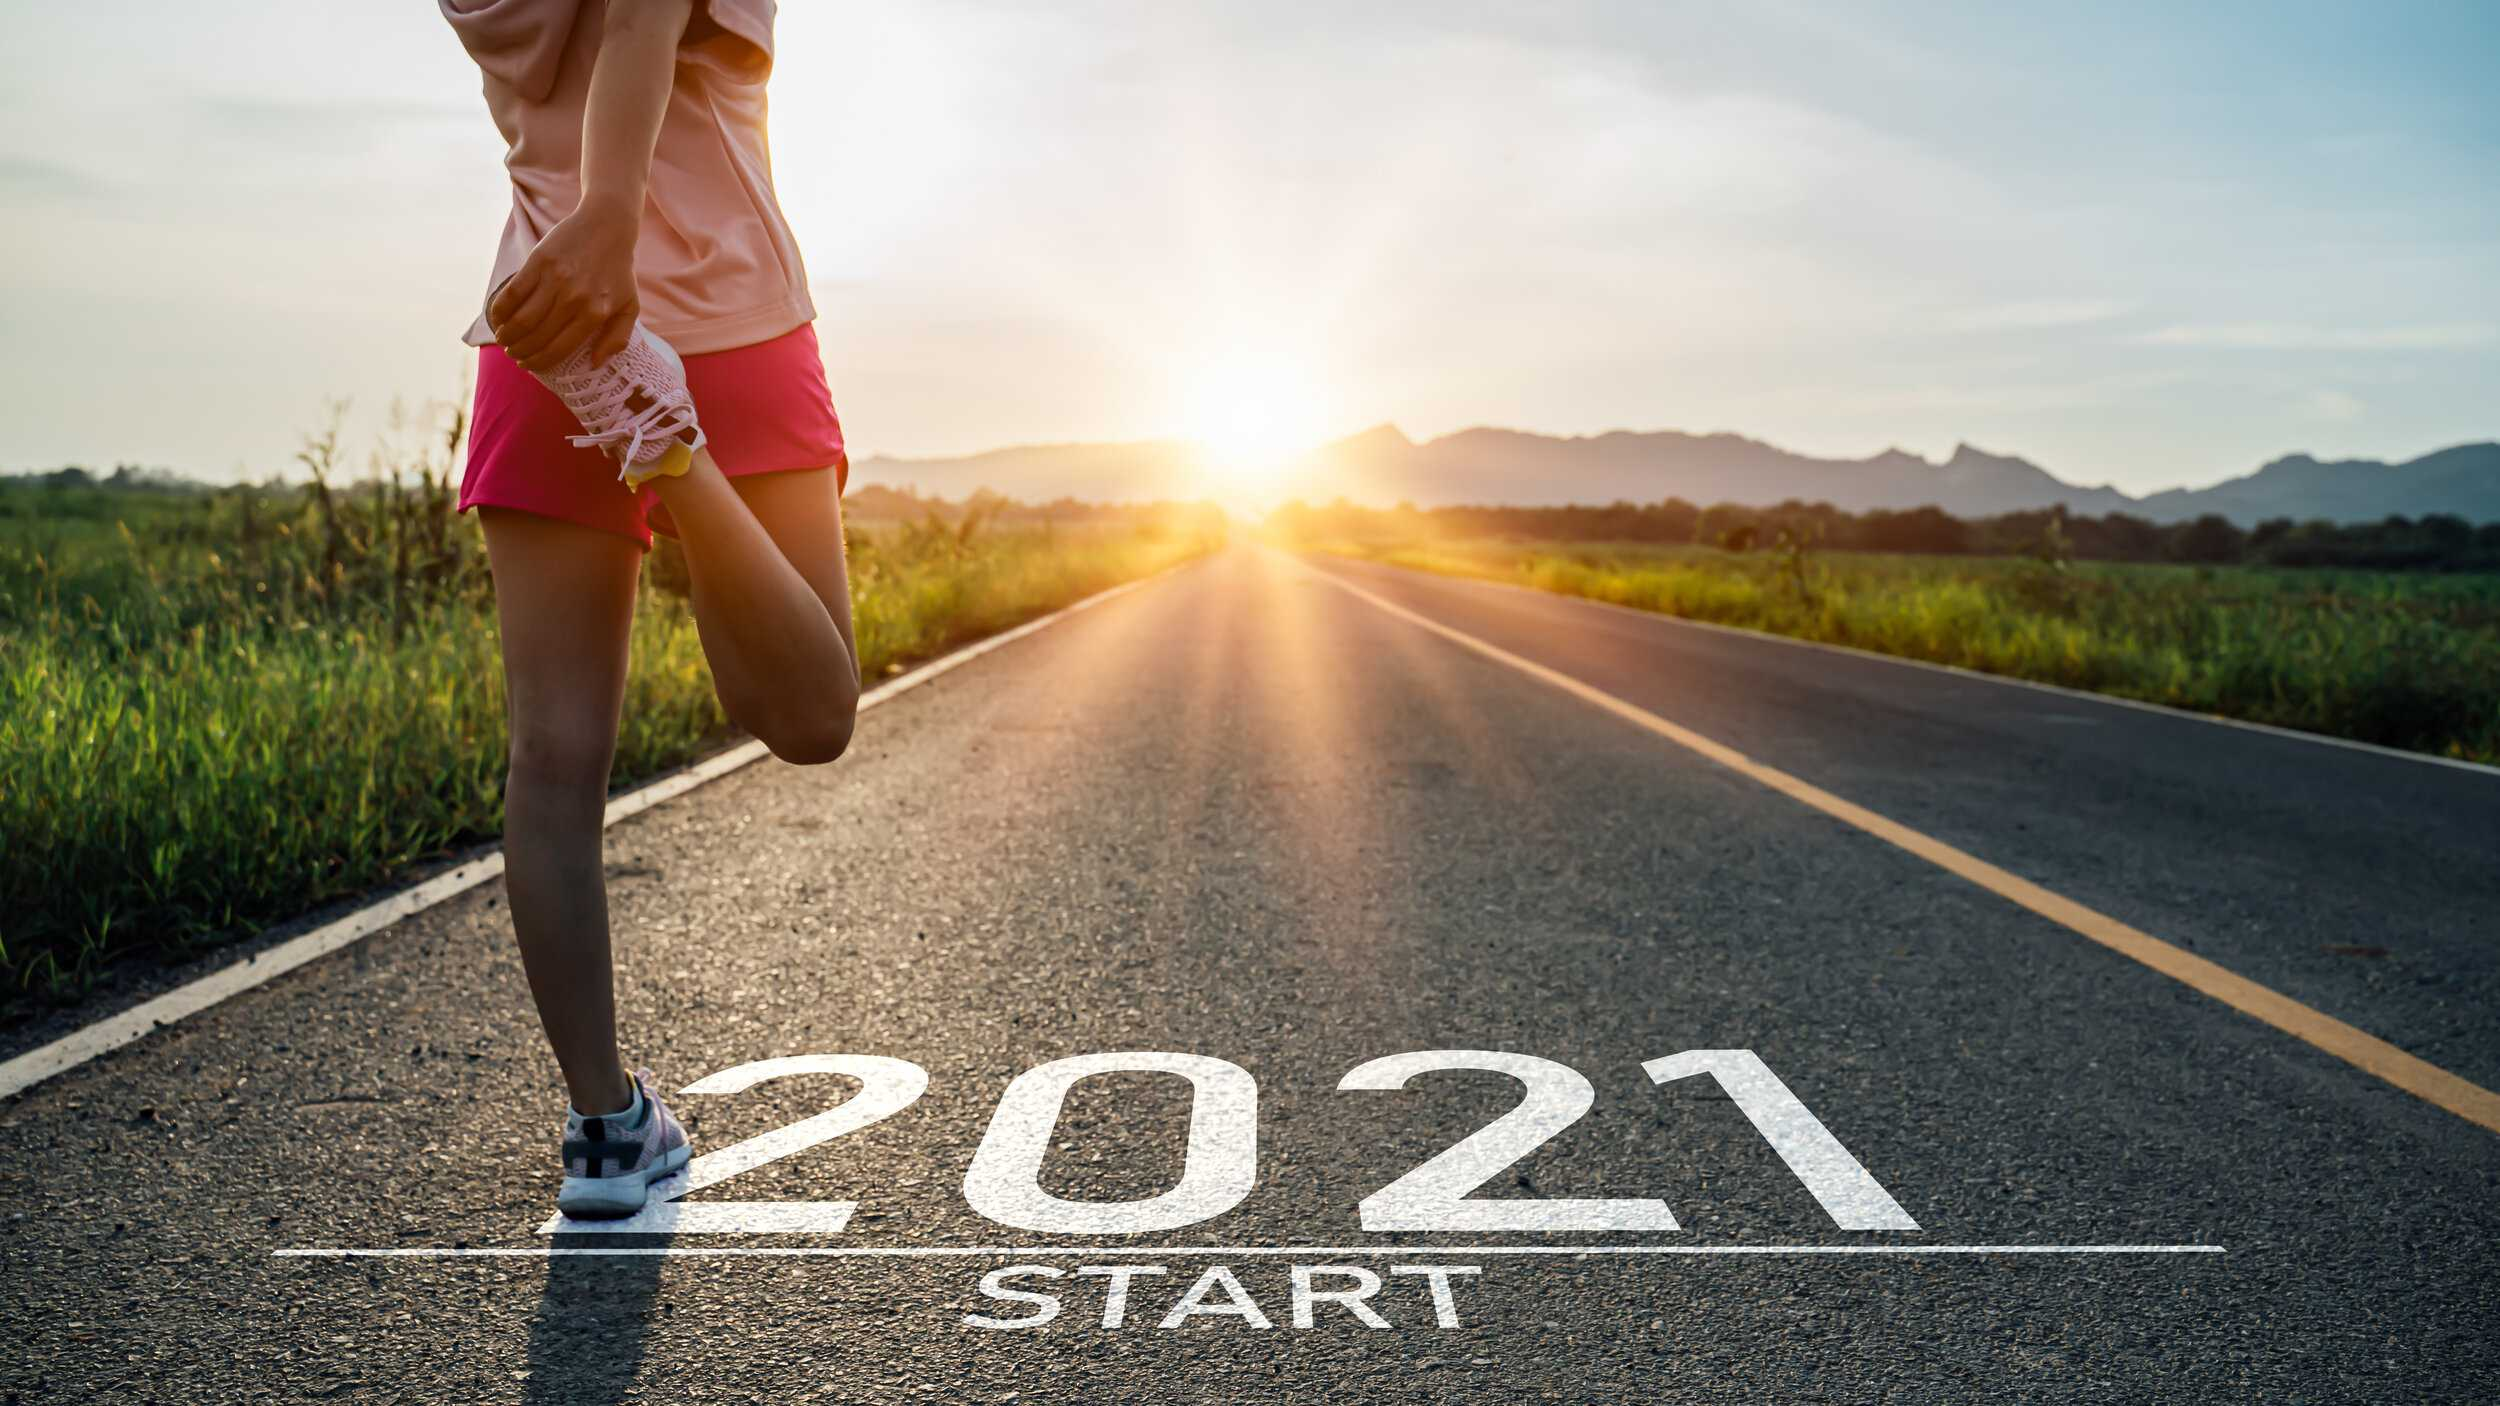 Payday Loan Debt Relief in 2021